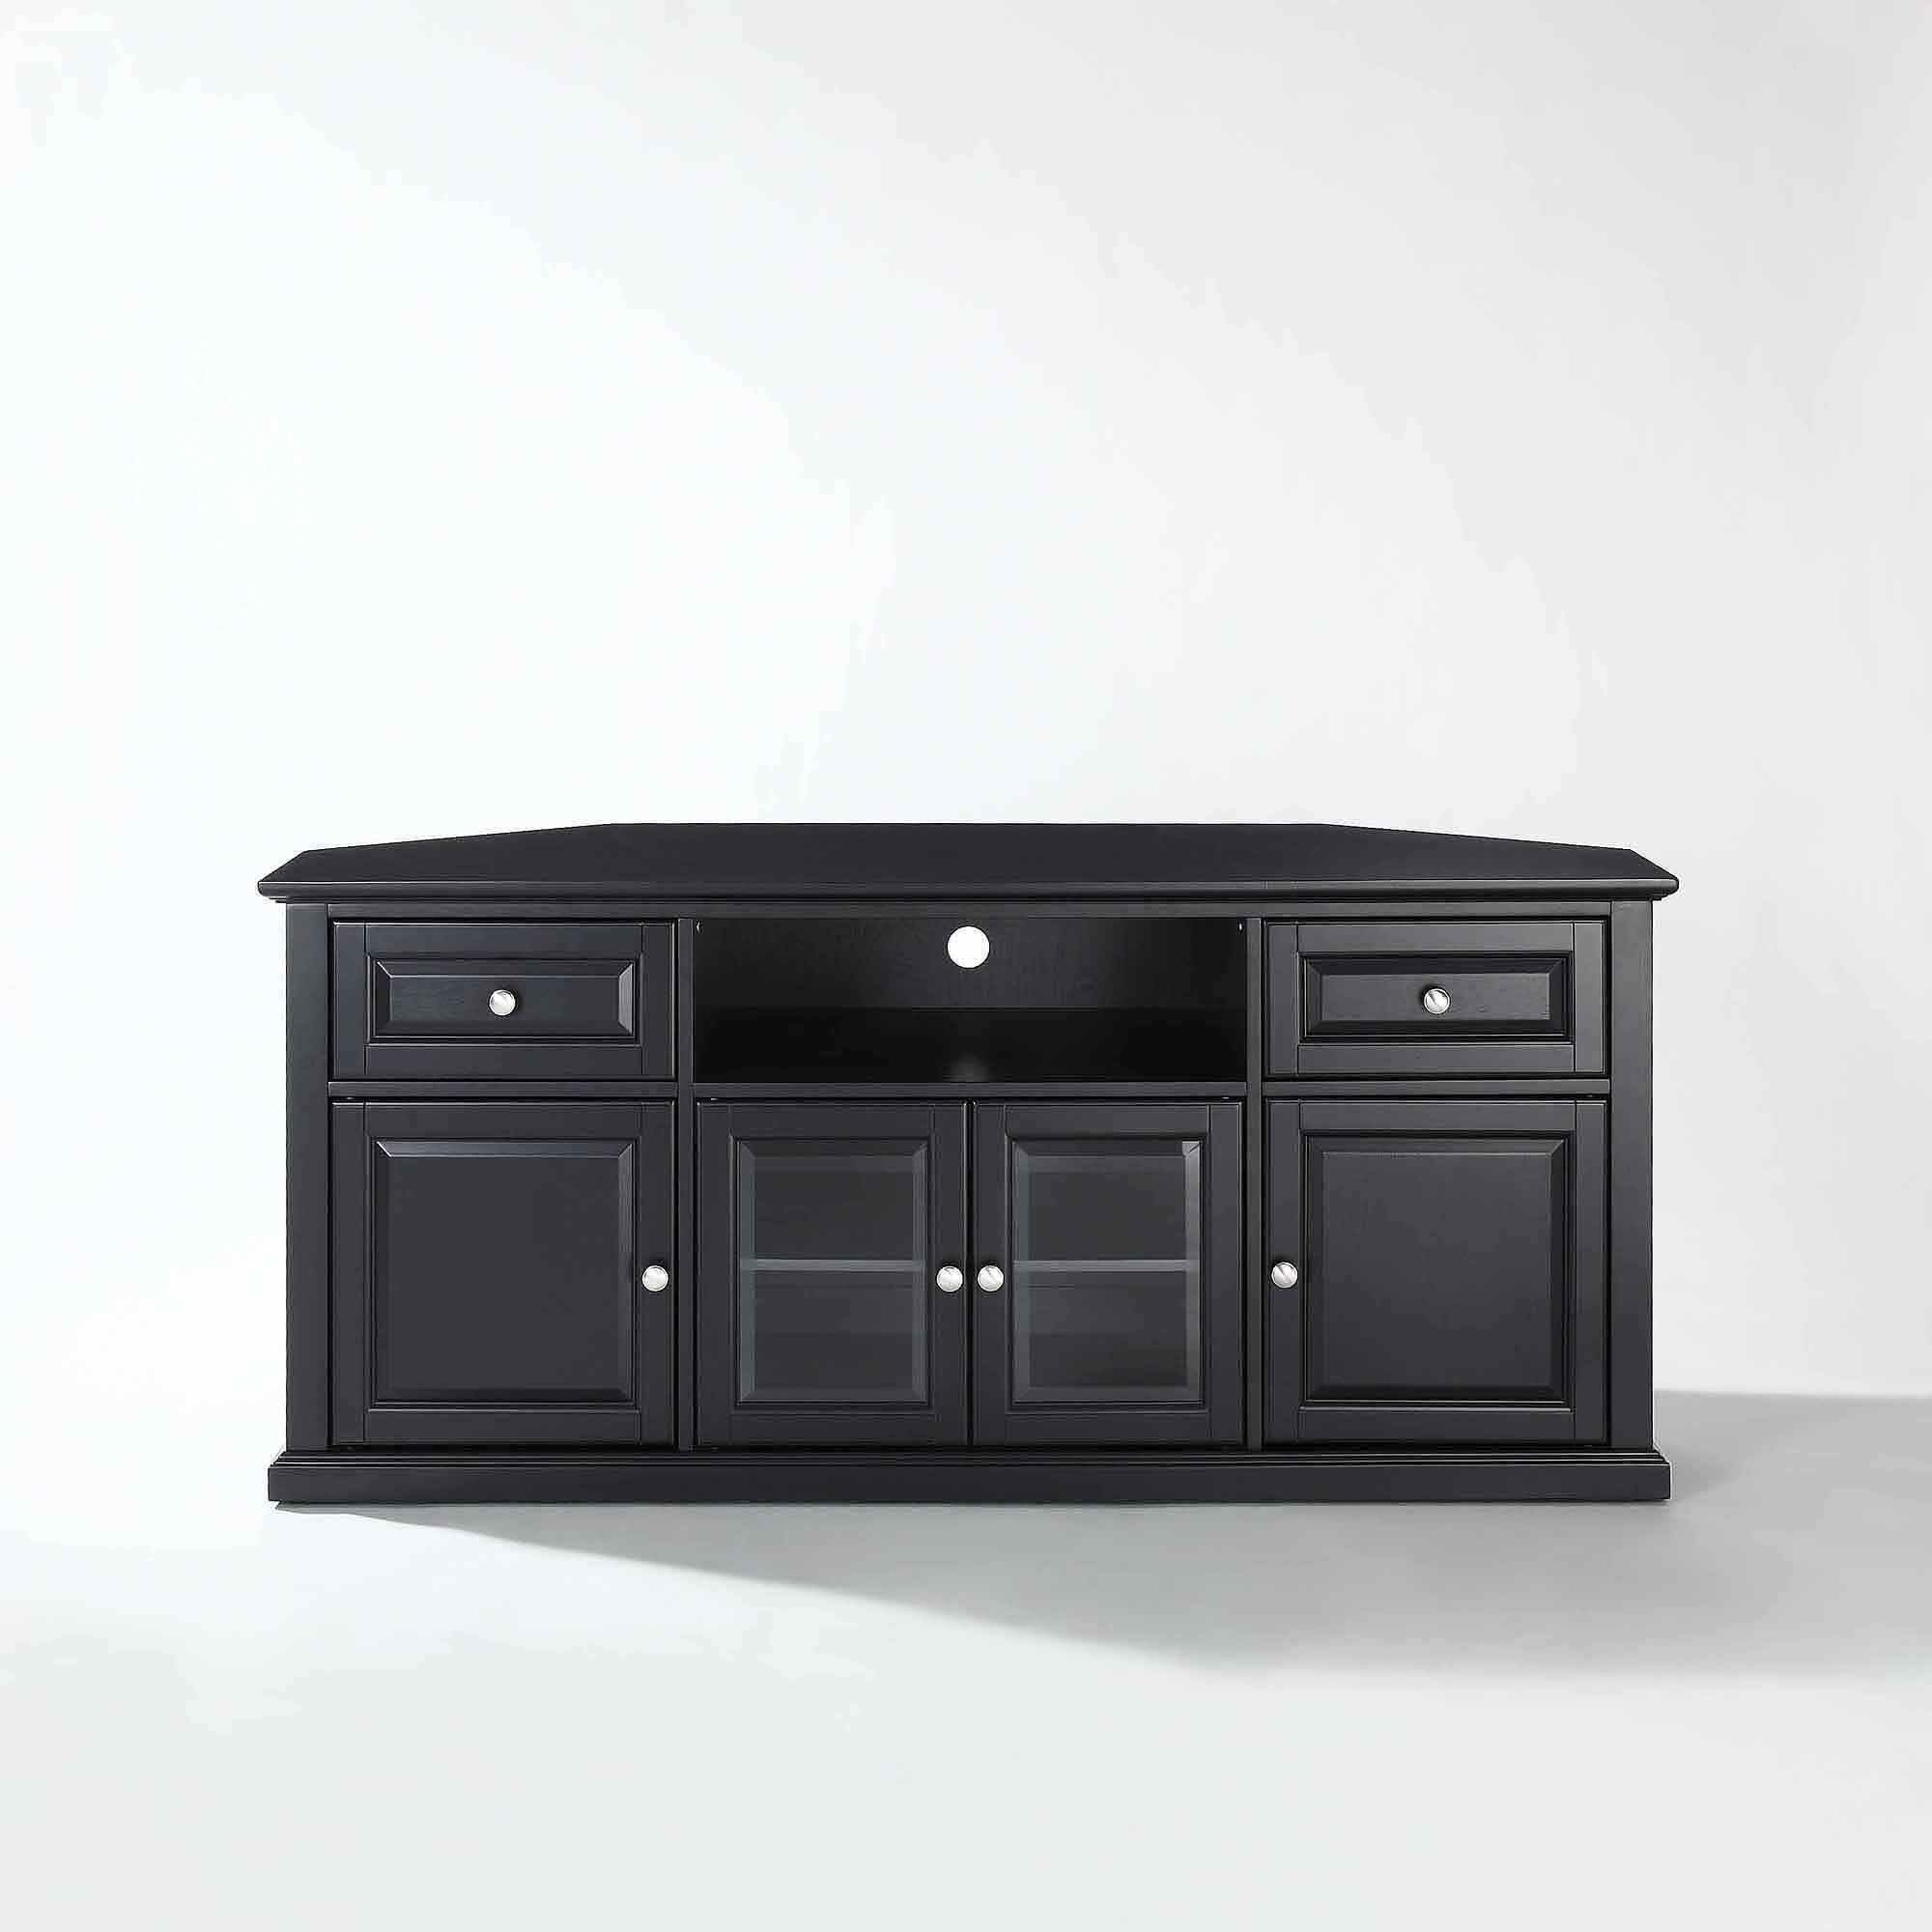 Corner Tv Stands For 60 Flat Screens - Aiyorikane throughout Black Corner Tv Cabinets (Image 4 of 15)